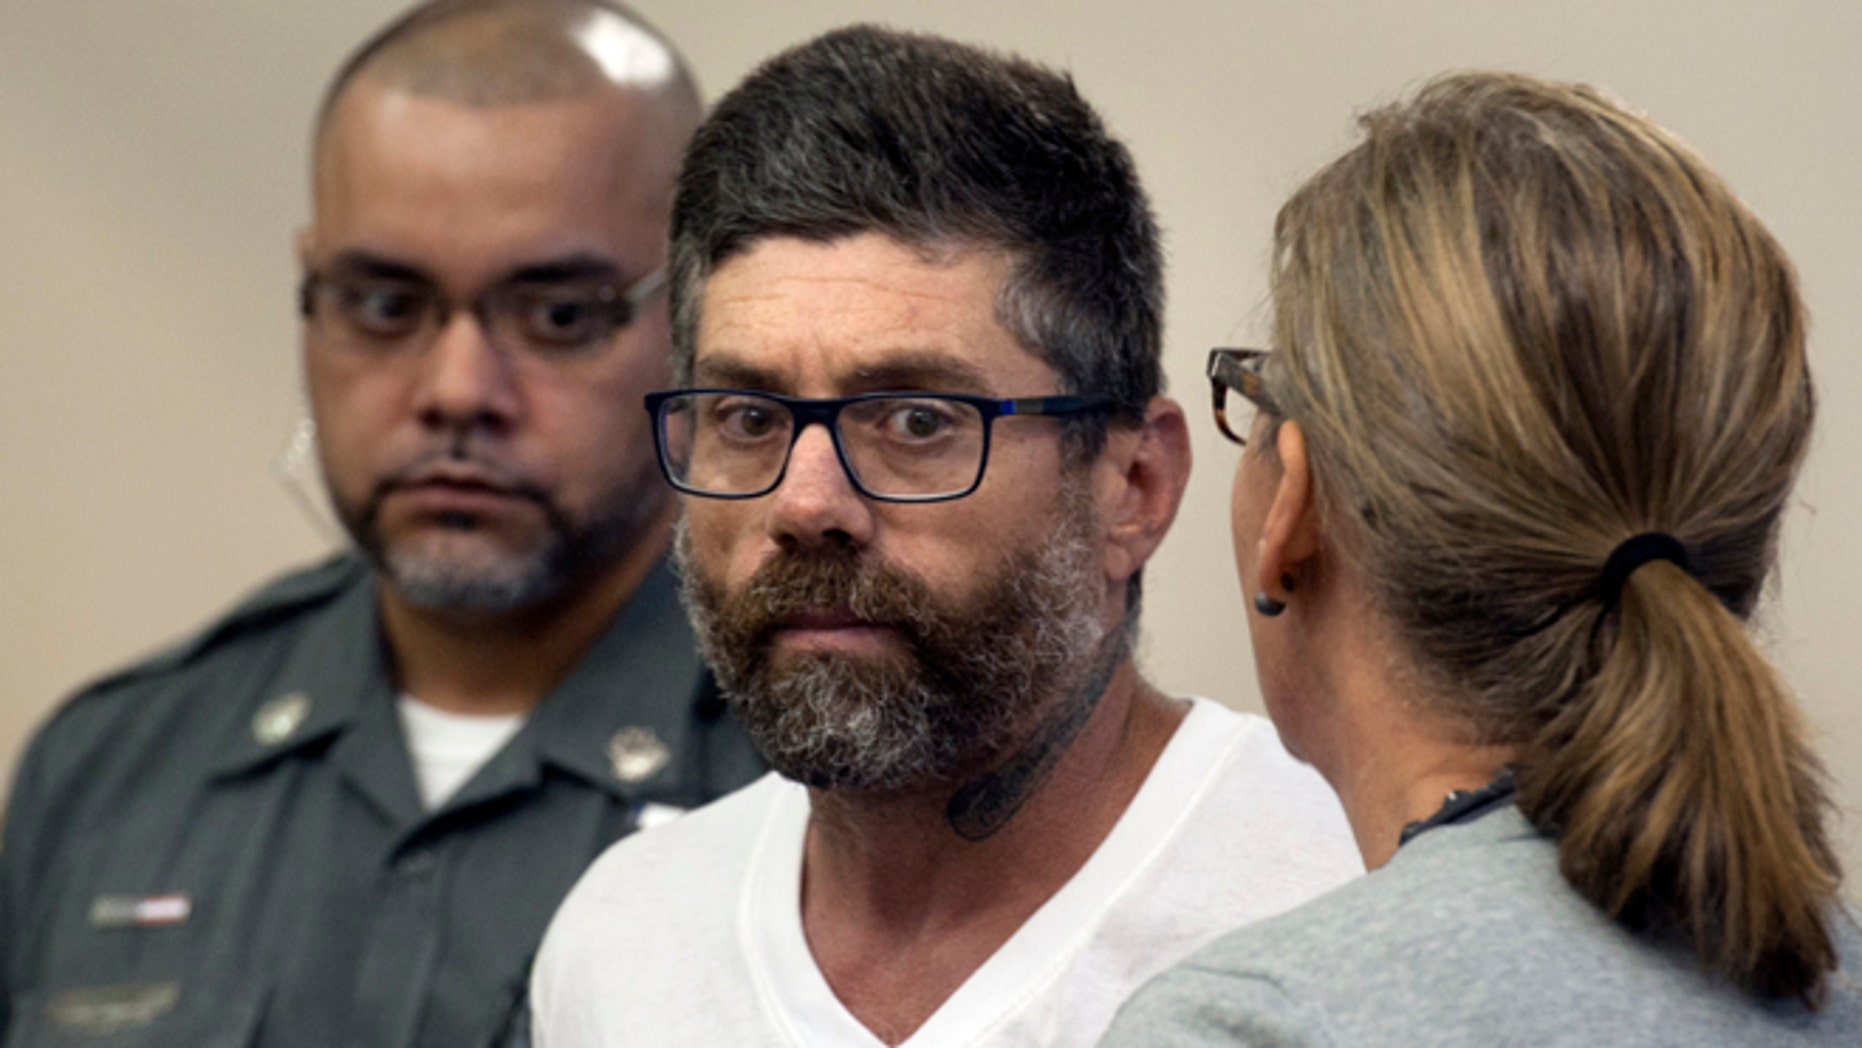 Walter DaSilva, center, of Danbury, Conn., appears in Superior Court for an extradition hearing in Bridgeport, Conn., on Monday, Aug. 8, 2016. DaSilva was arrested in Bridgeport on Friday, and is wanted as a suspect in the July 3 fatal shooting of his 19-year old daughter, Sabrina DaSilva, in New Bedford, Mass. (Ned Gerard/Hearst Connecticut Media via AP, Pool)